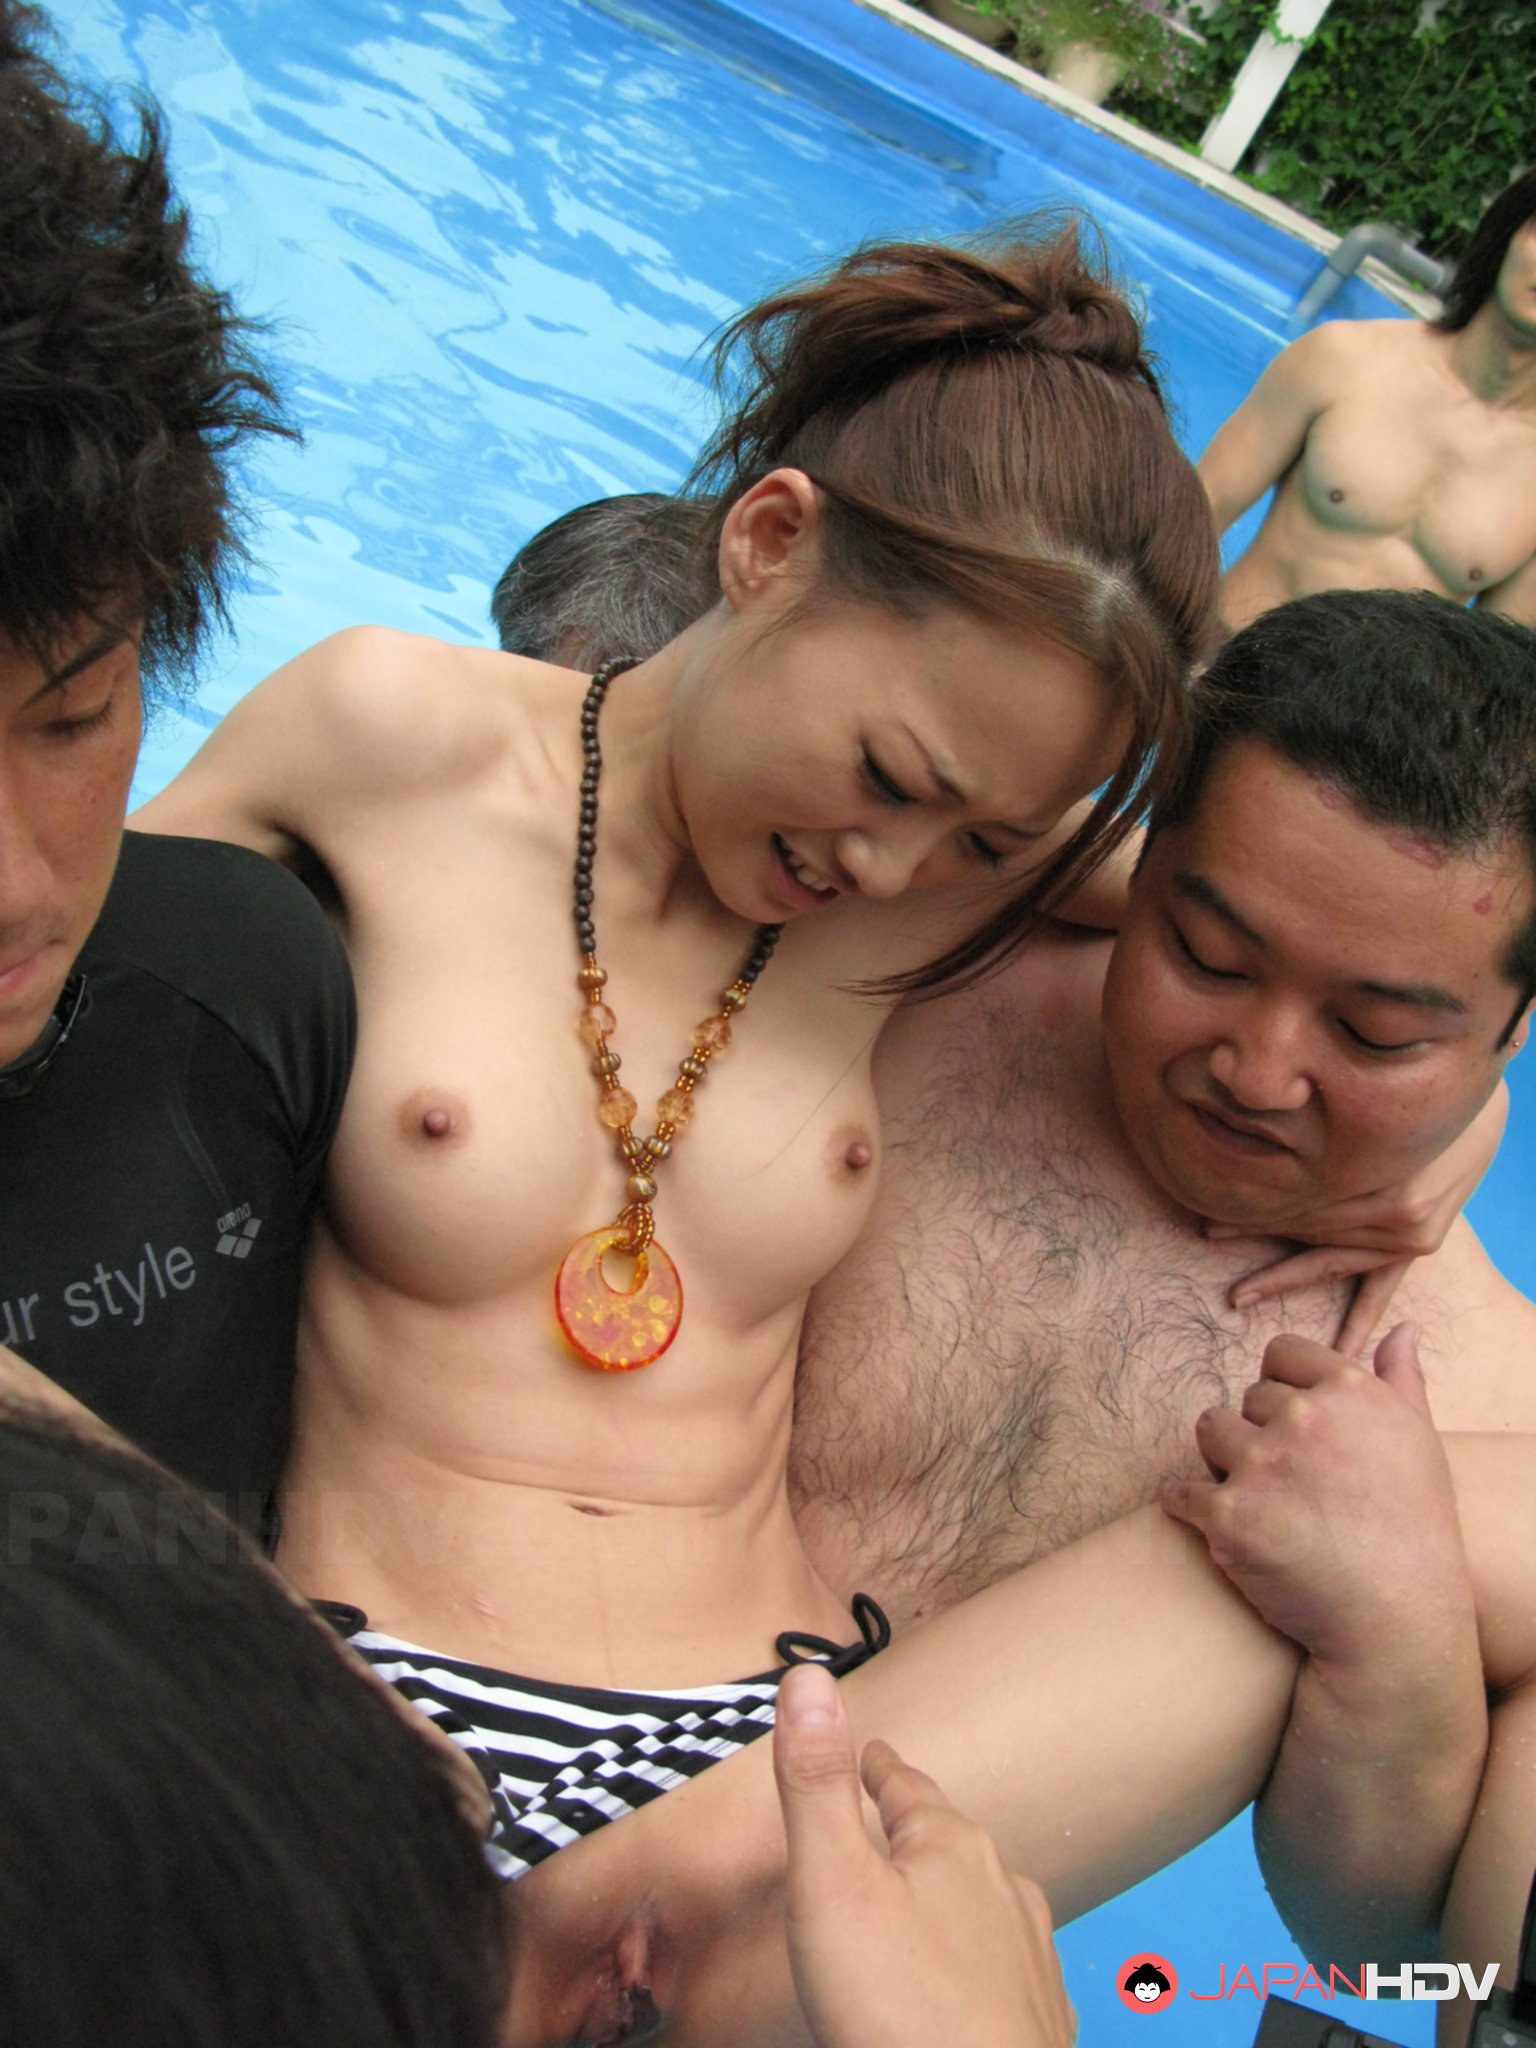 Group nude pool japanese girl